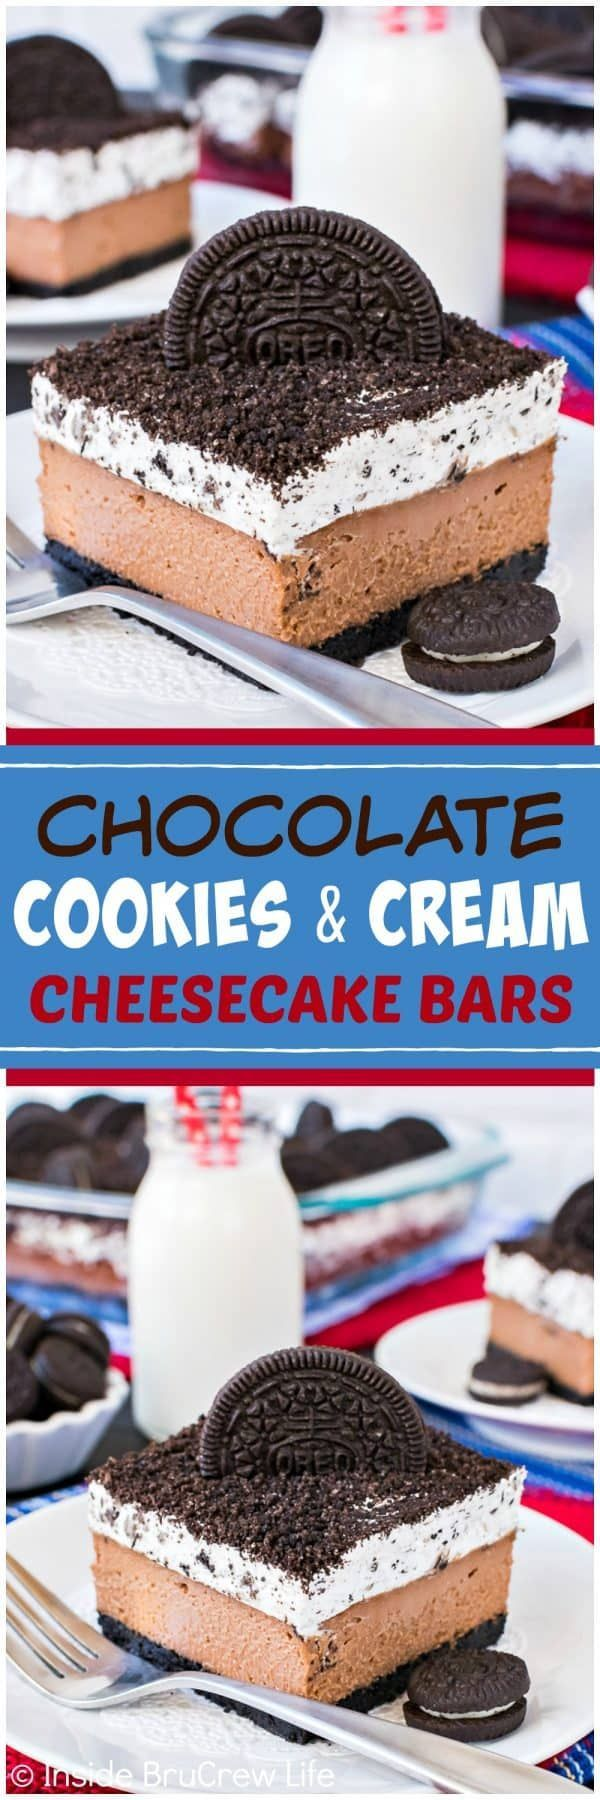 Chocolate Cookies and Cream Cheesecake Bars - layers of creamy chocolate cheesecake and a fluffy cookies and cream mousse will make this disappear in a hurry. Great recipe to share for dessert! #chocolate #cheesecake #oreo #cookiesandcream #dessert